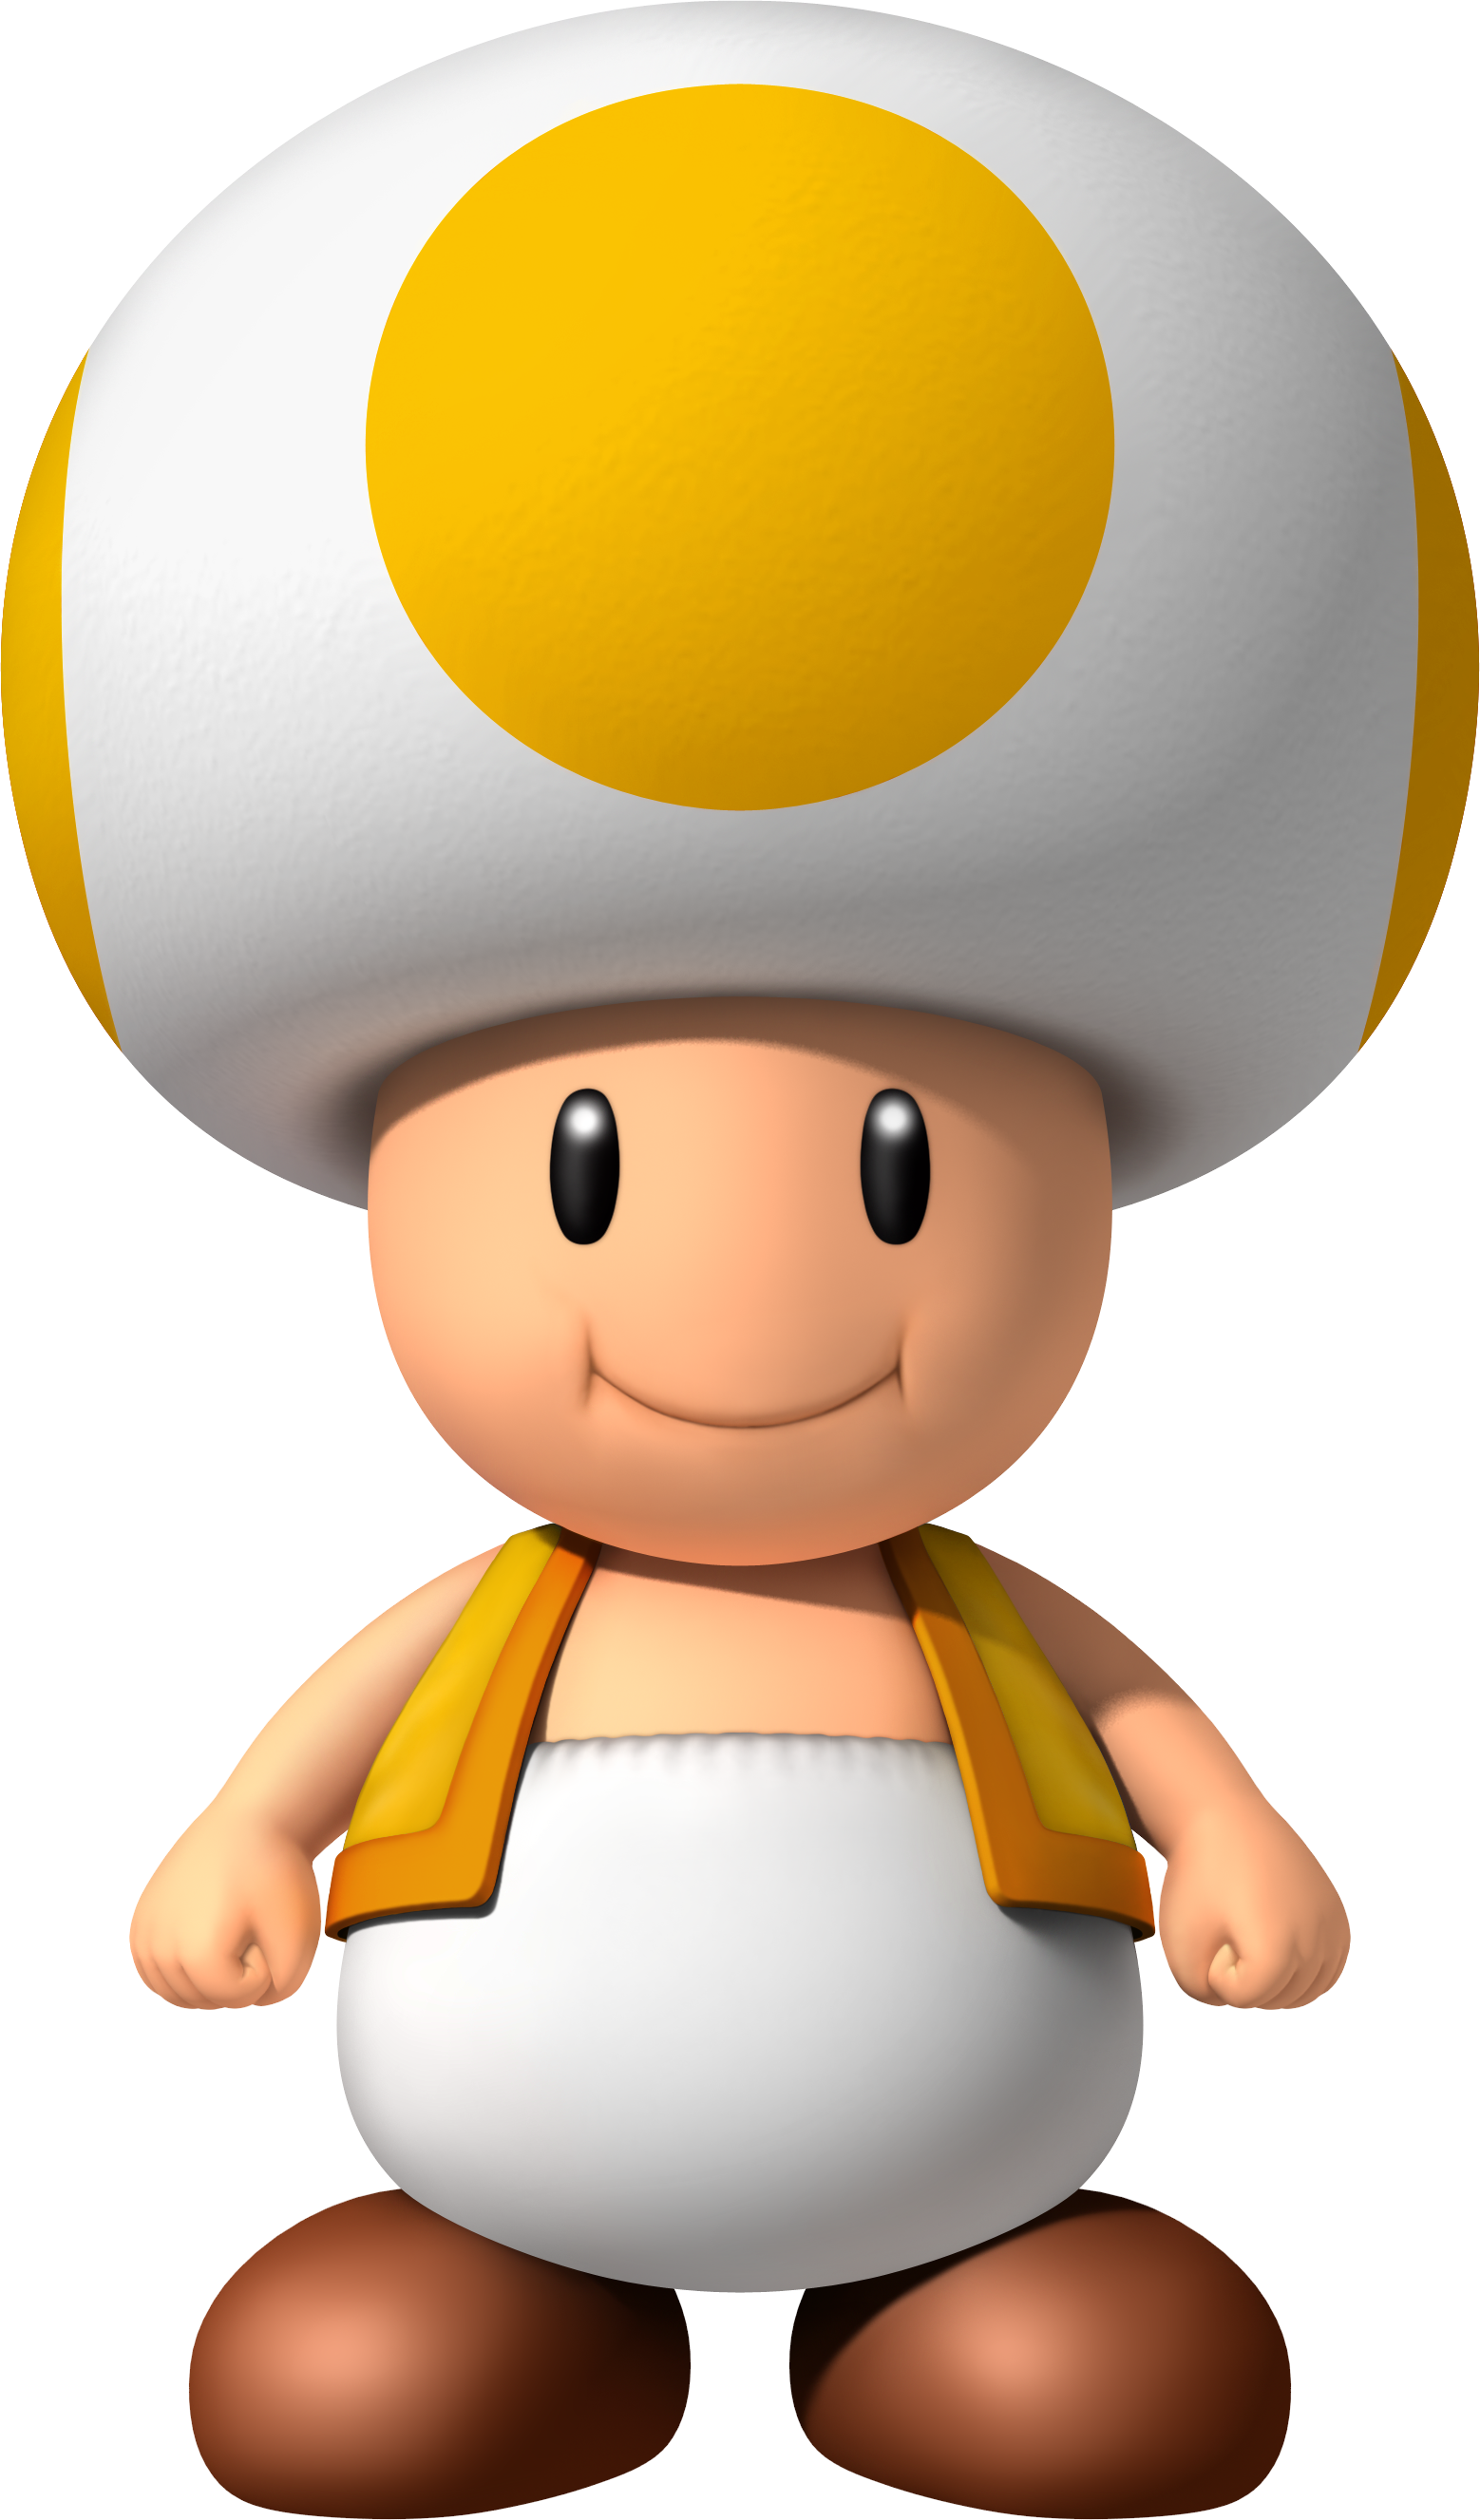 Toad transparent yellow. Image nsmbw png mighty